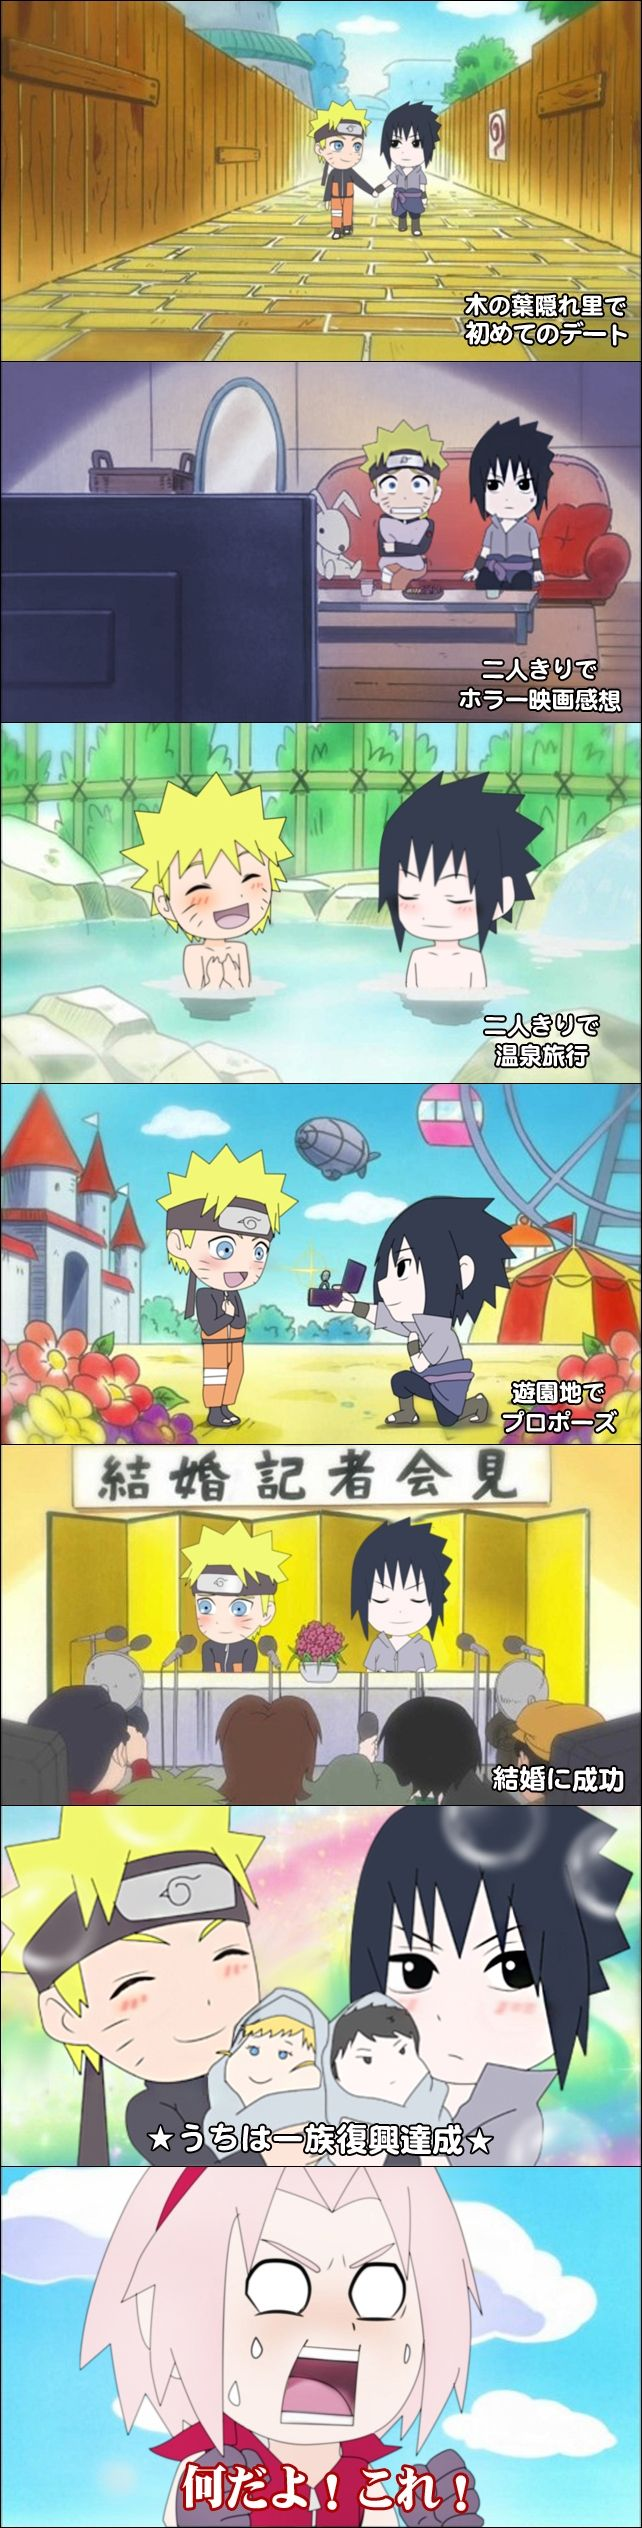 Lol sorry Sakura but it looks like you won't be ending up with Sasuke or Naruto XD. this is so funny